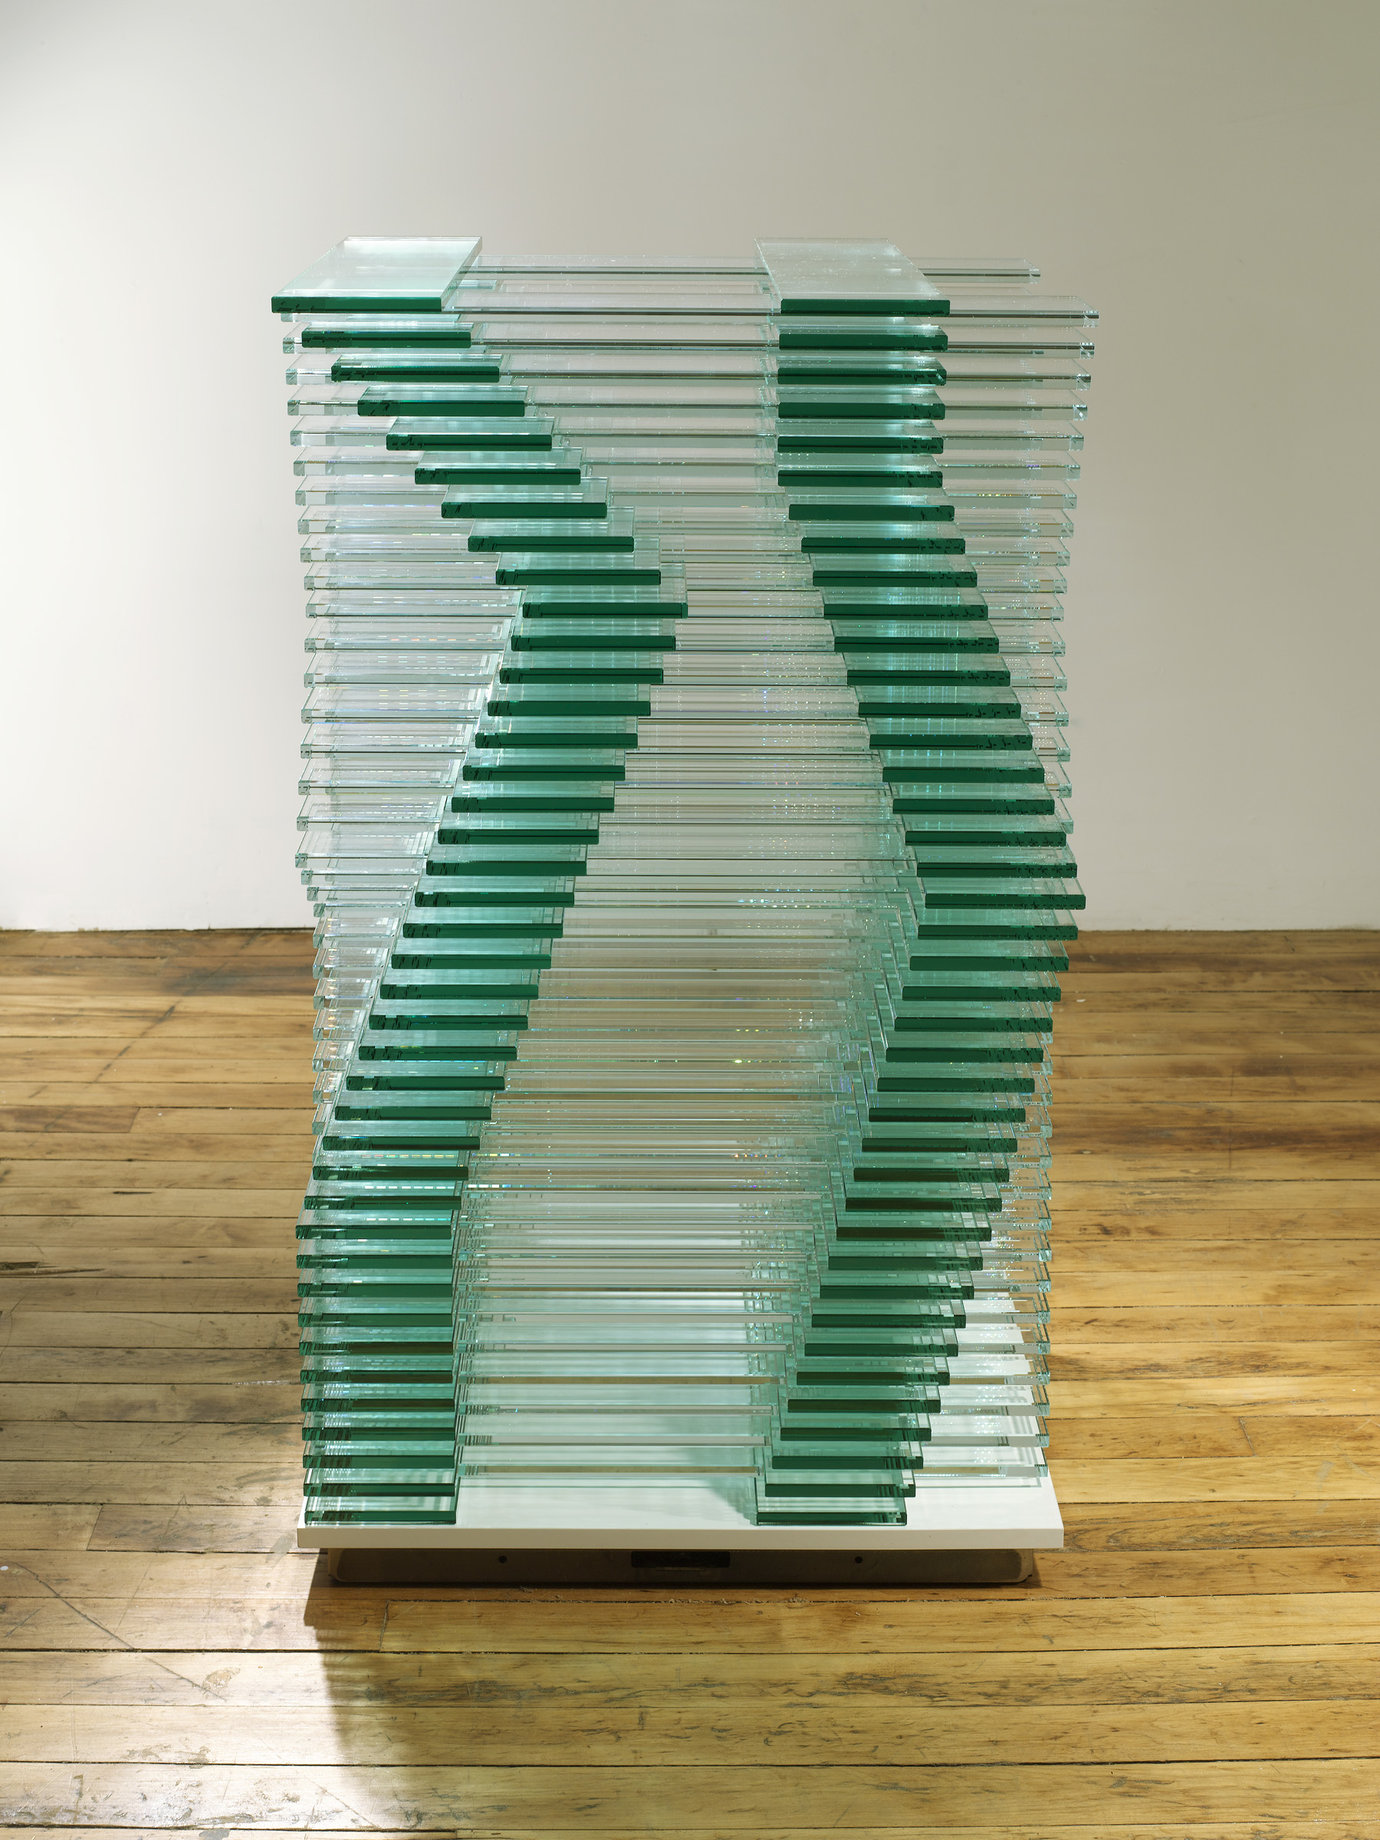 ", 2008. low iron glass and clear float glass, 38"" x 23-3/4"" x 23-3/4"" (96.5 cm x 60.3 cm x 60.3 cm)."